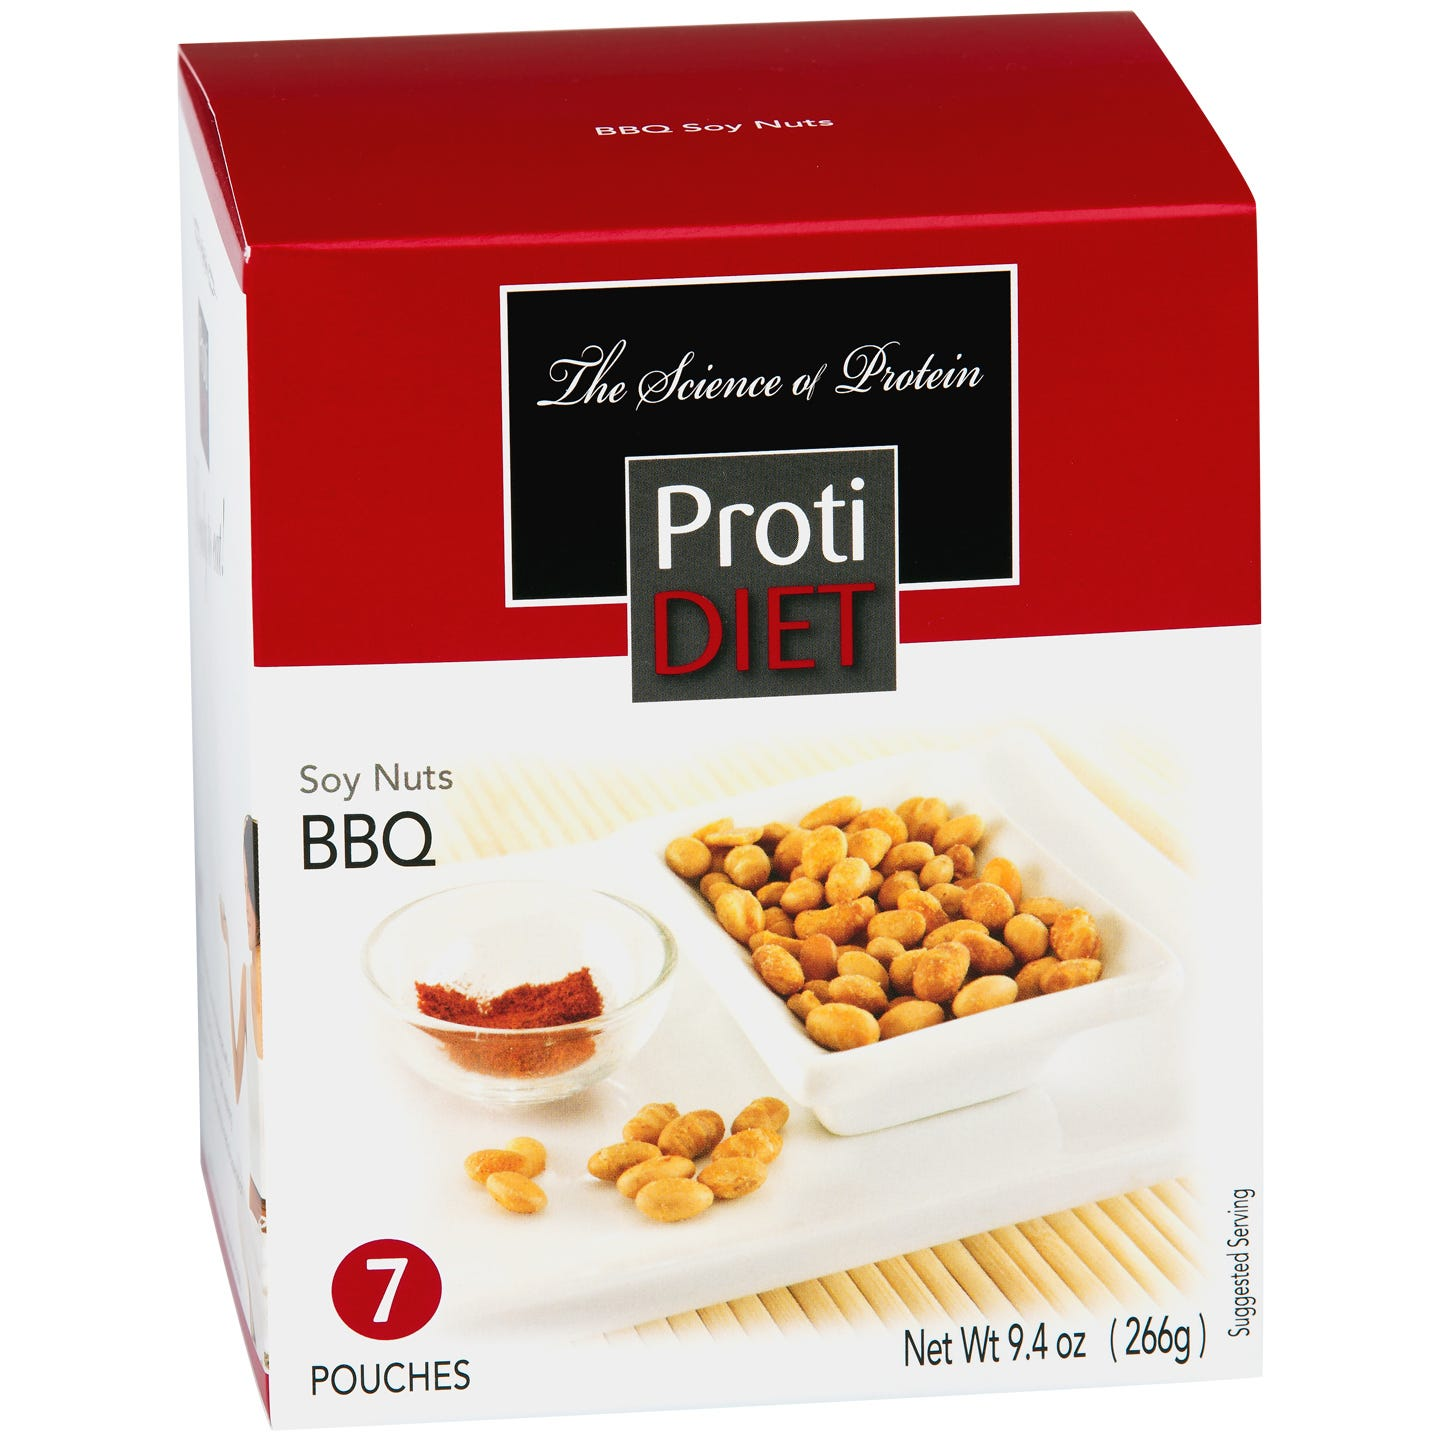 ProtiDiet Roasted & Salted Soy Nuts - BBQ